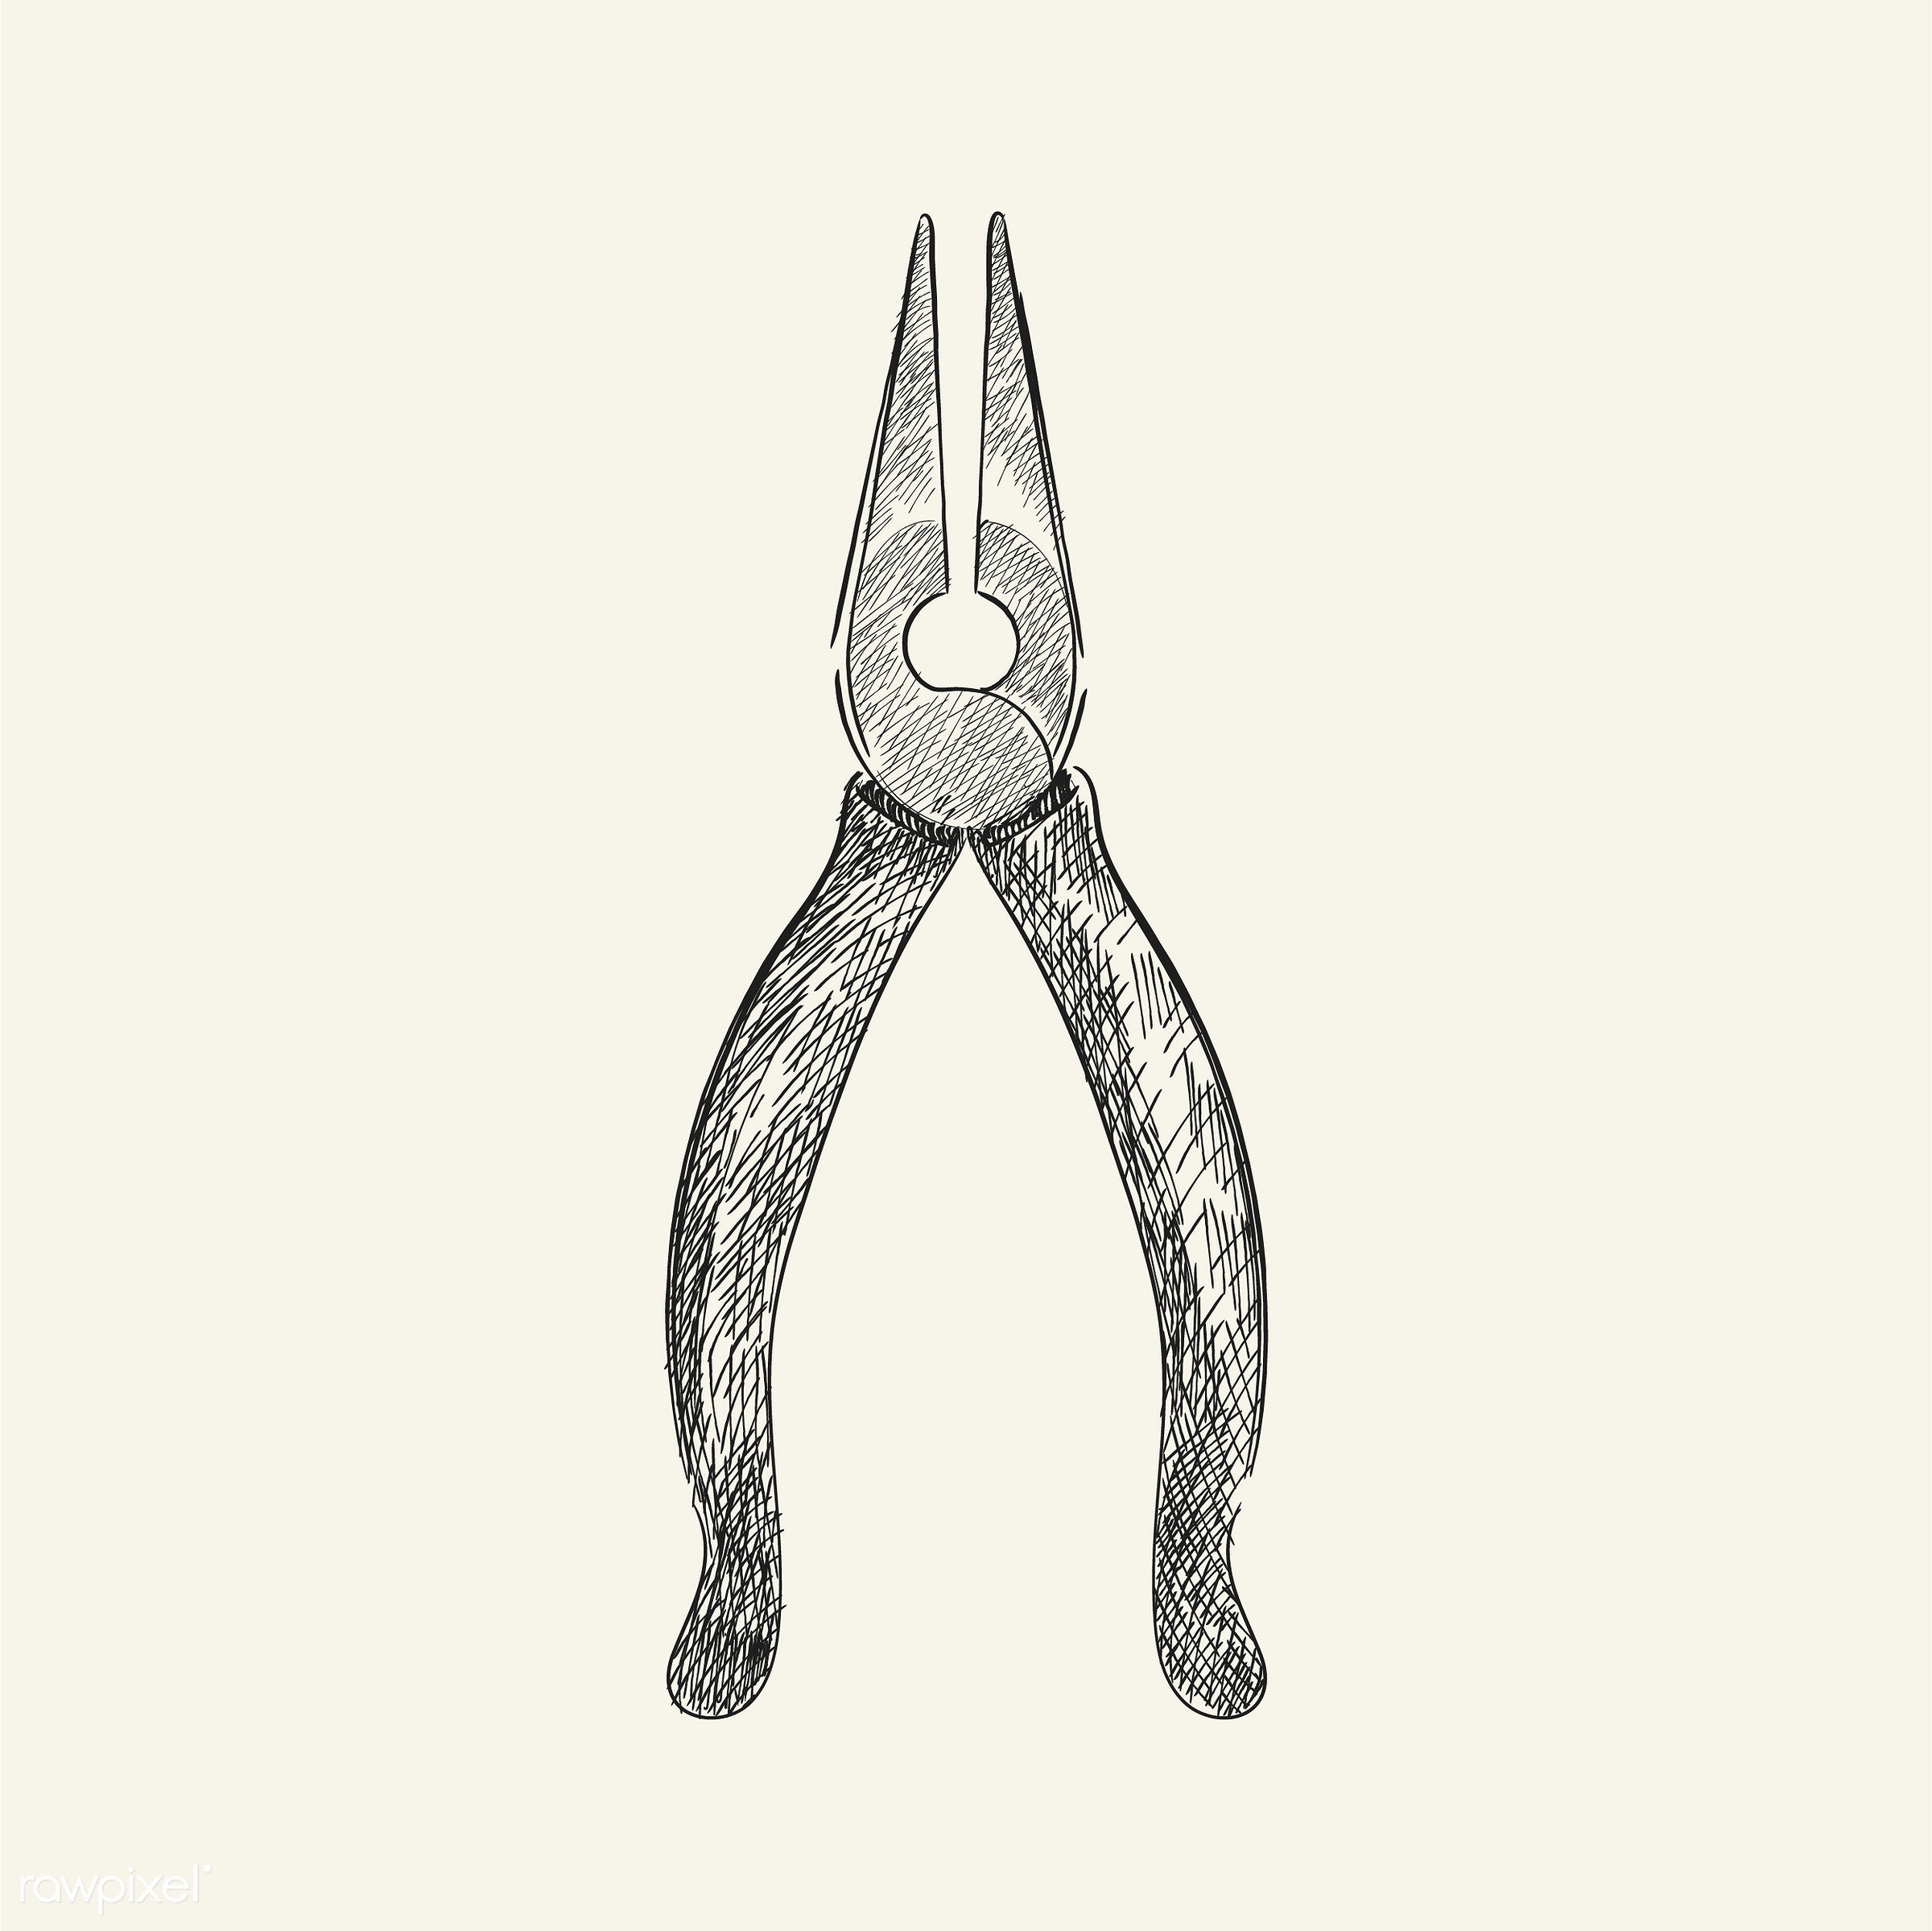 Vintage illustration of pliers - antique, black, design, drawing, equipment, graphic, hand drawing, hand drawn, icon,...